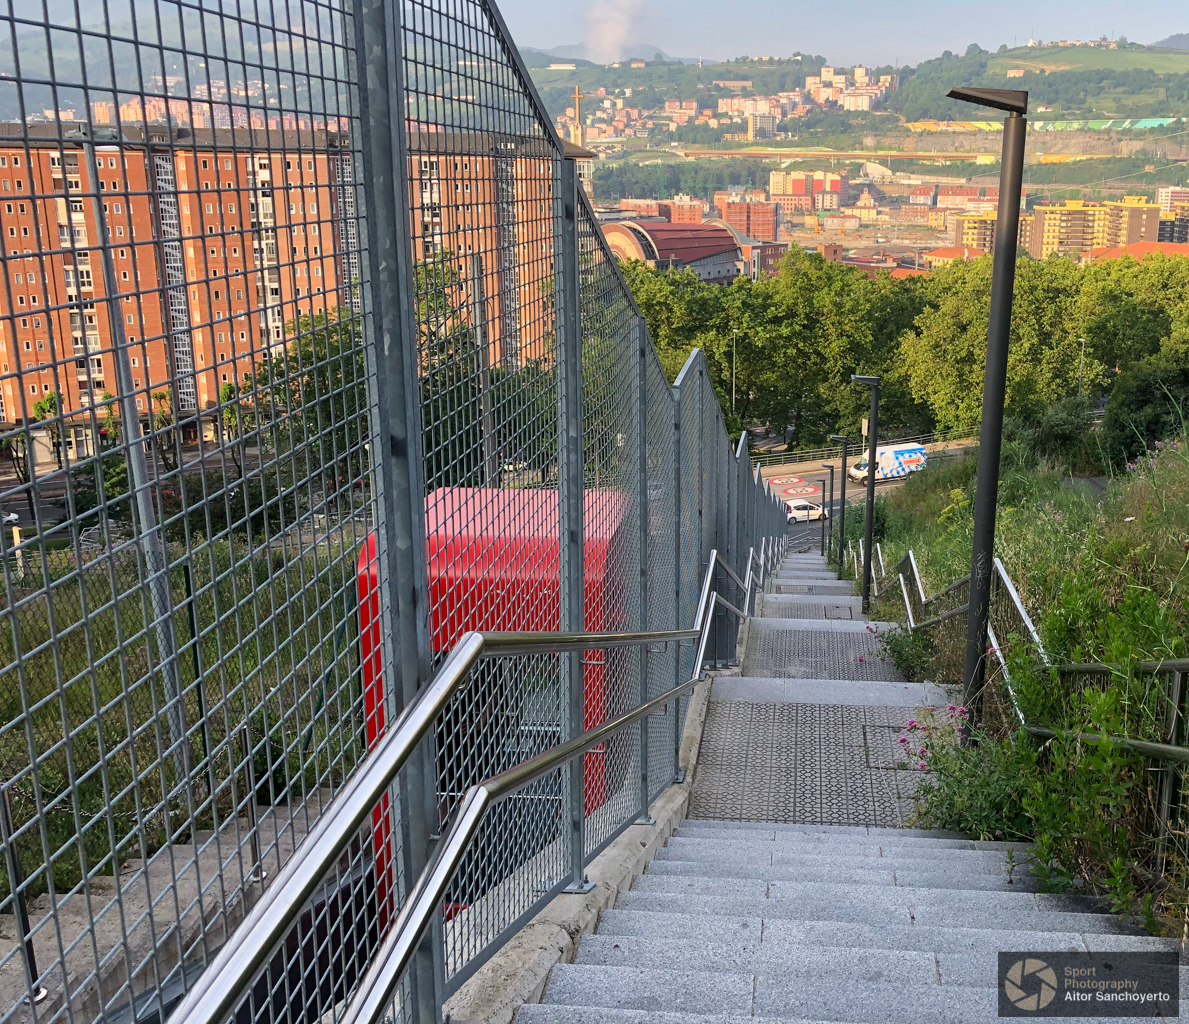 IMG 3521 aitorsanchoyerto website Escaleras